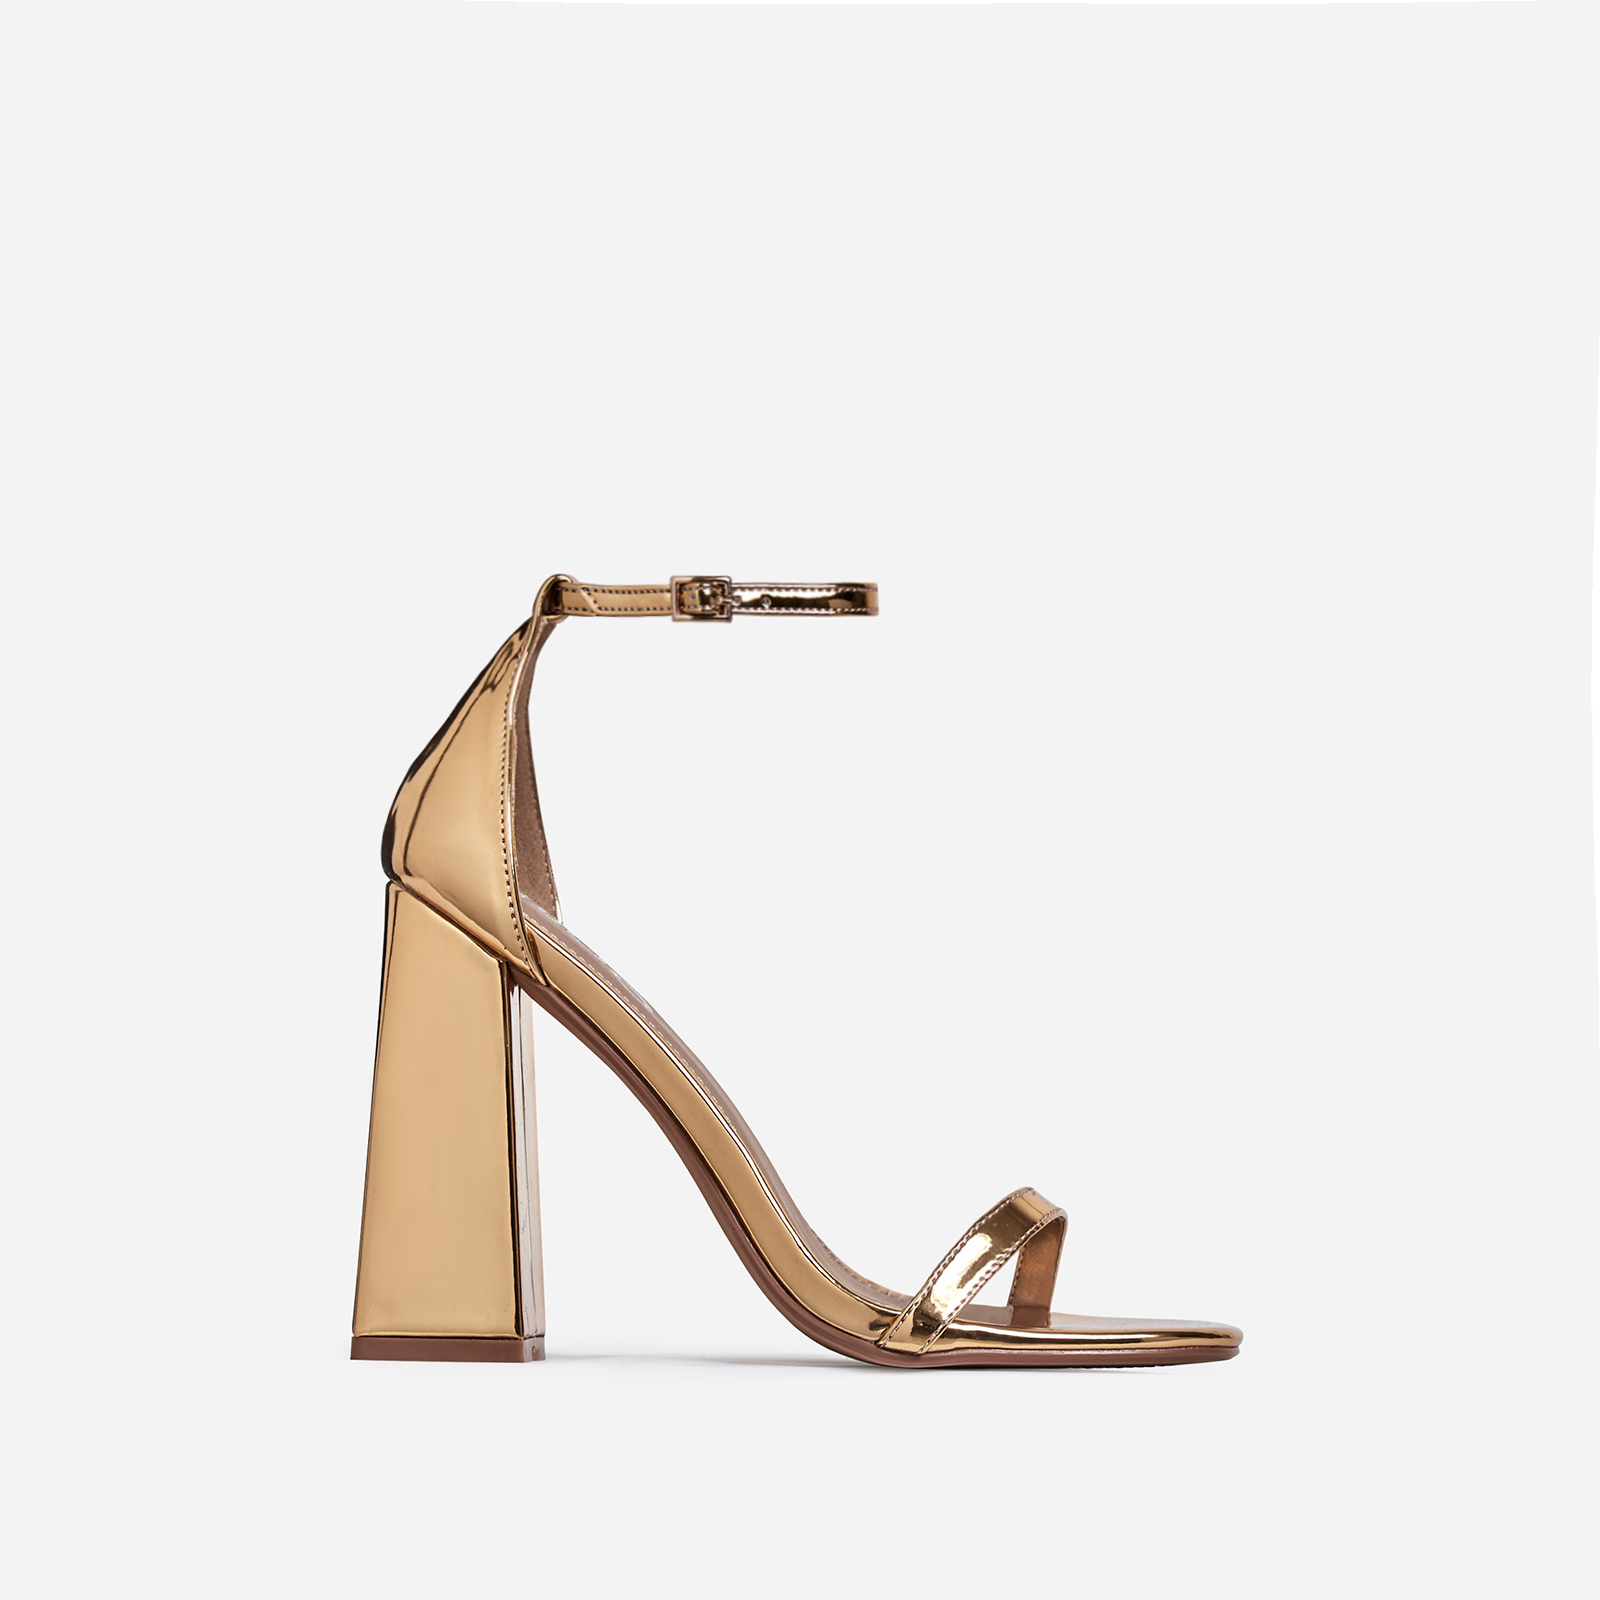 Atomic Square Block Heel In Gold Patent